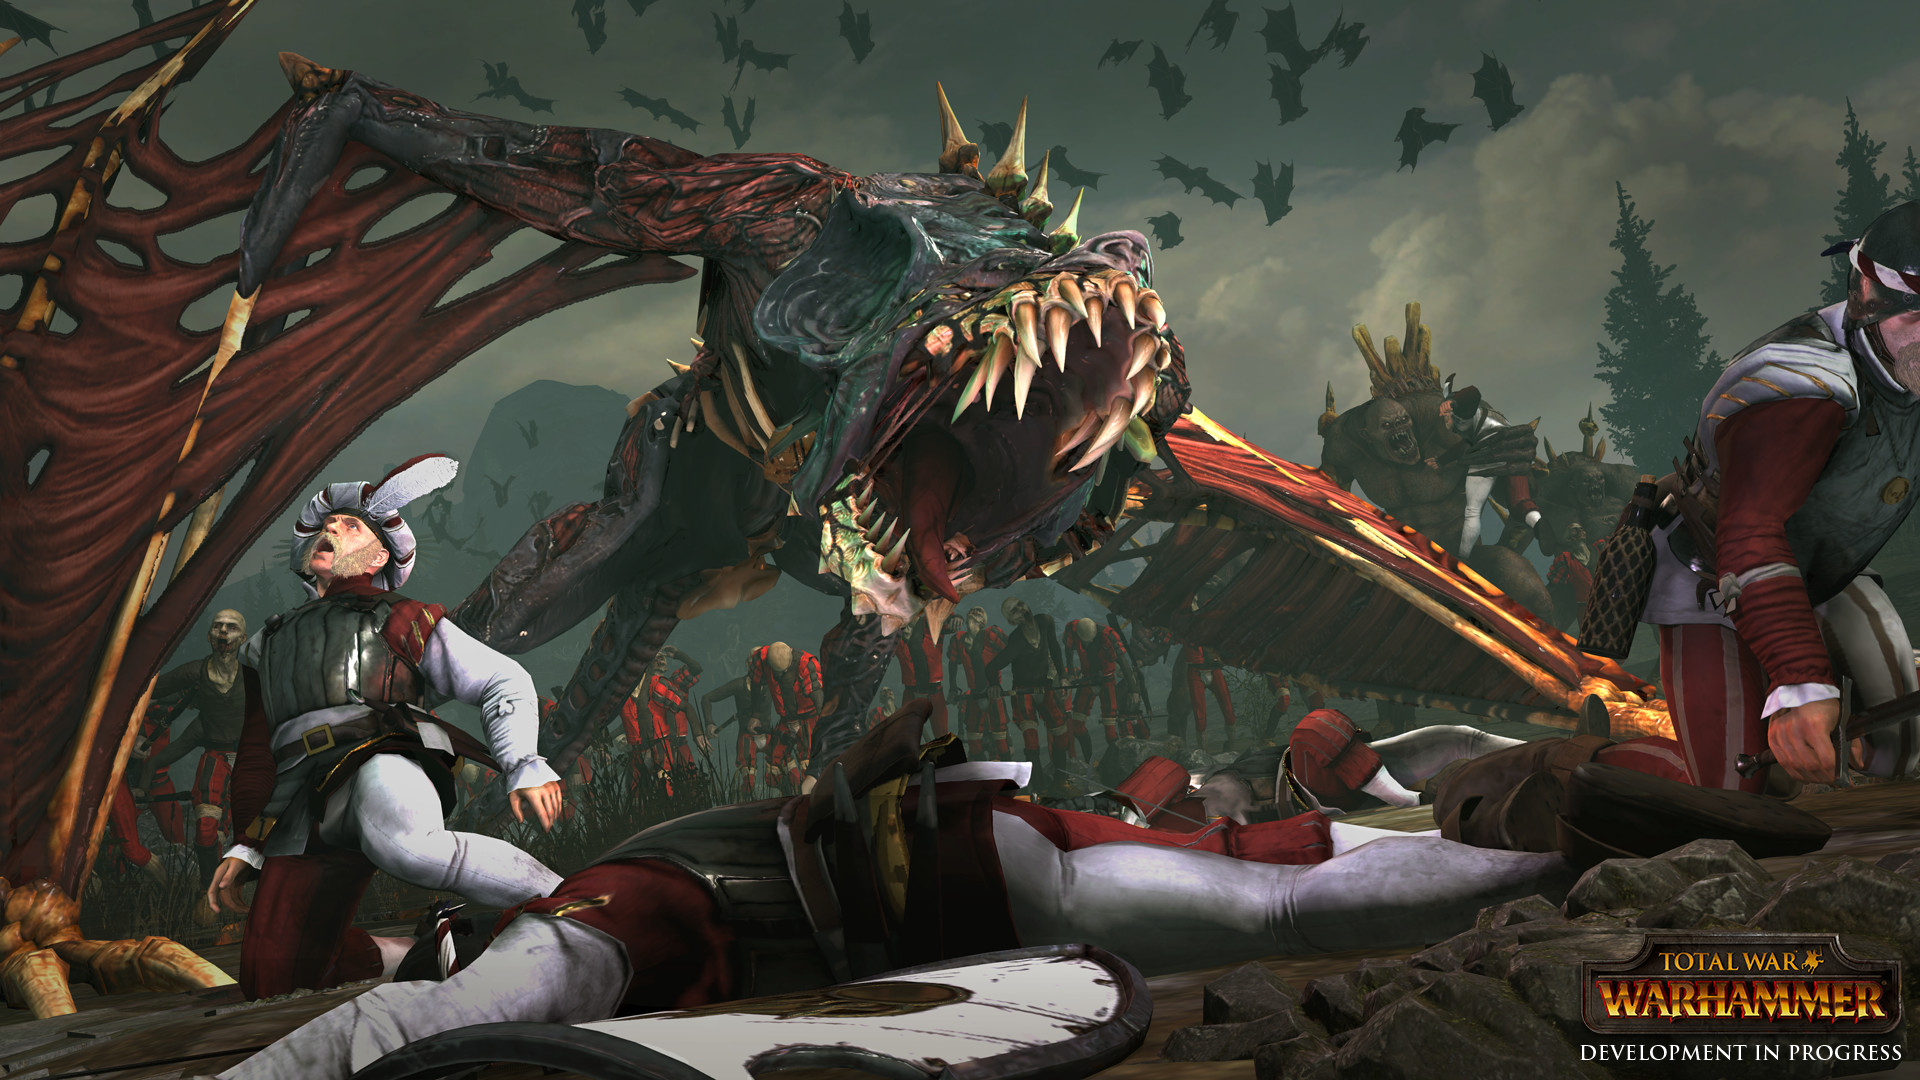 Total War: WARHAMMER System Requirements - Can I Run It